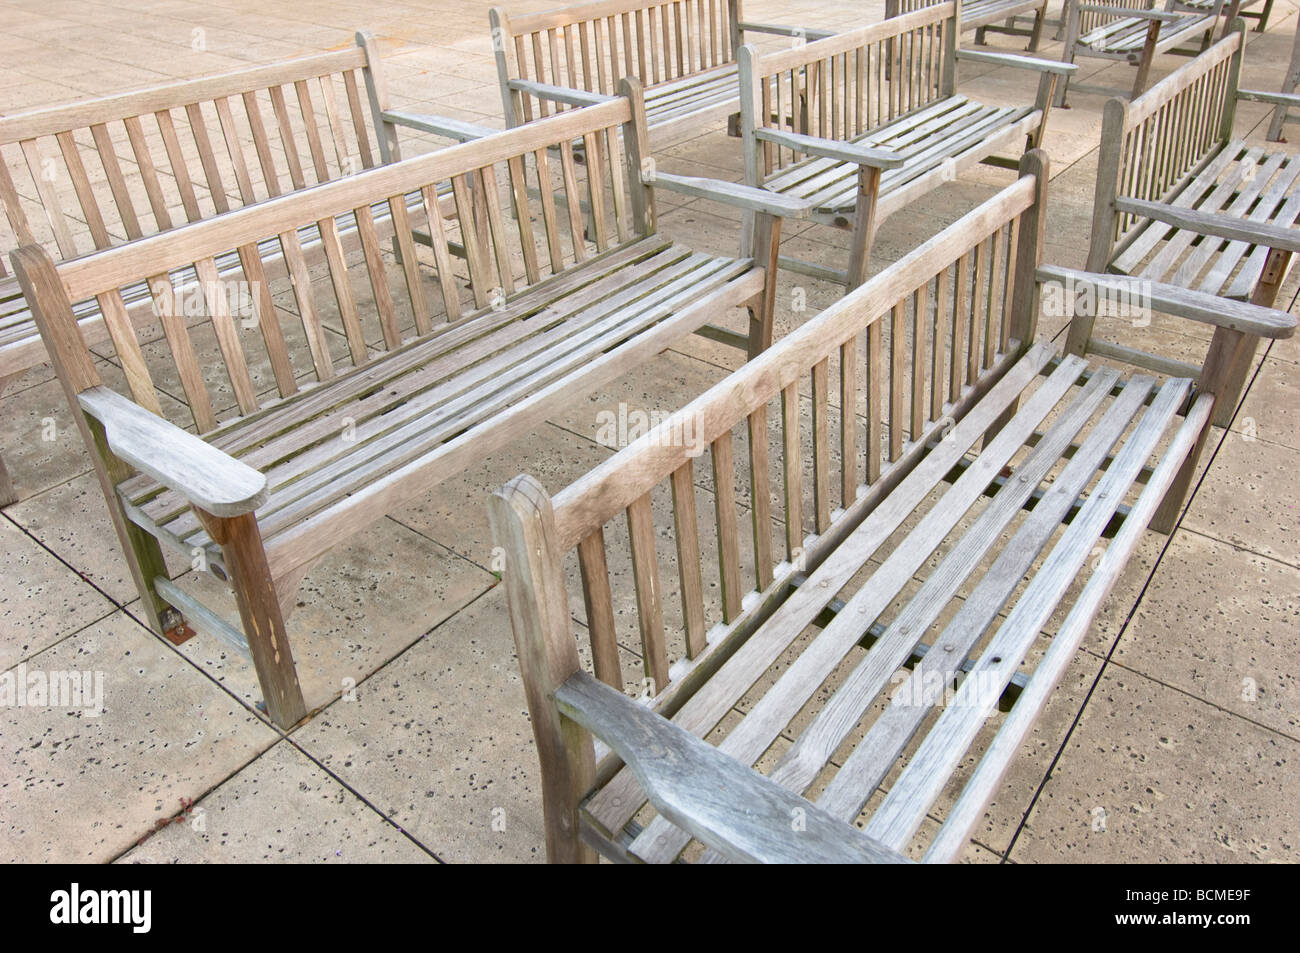 wooden benches weathered outdoors - Stock Image